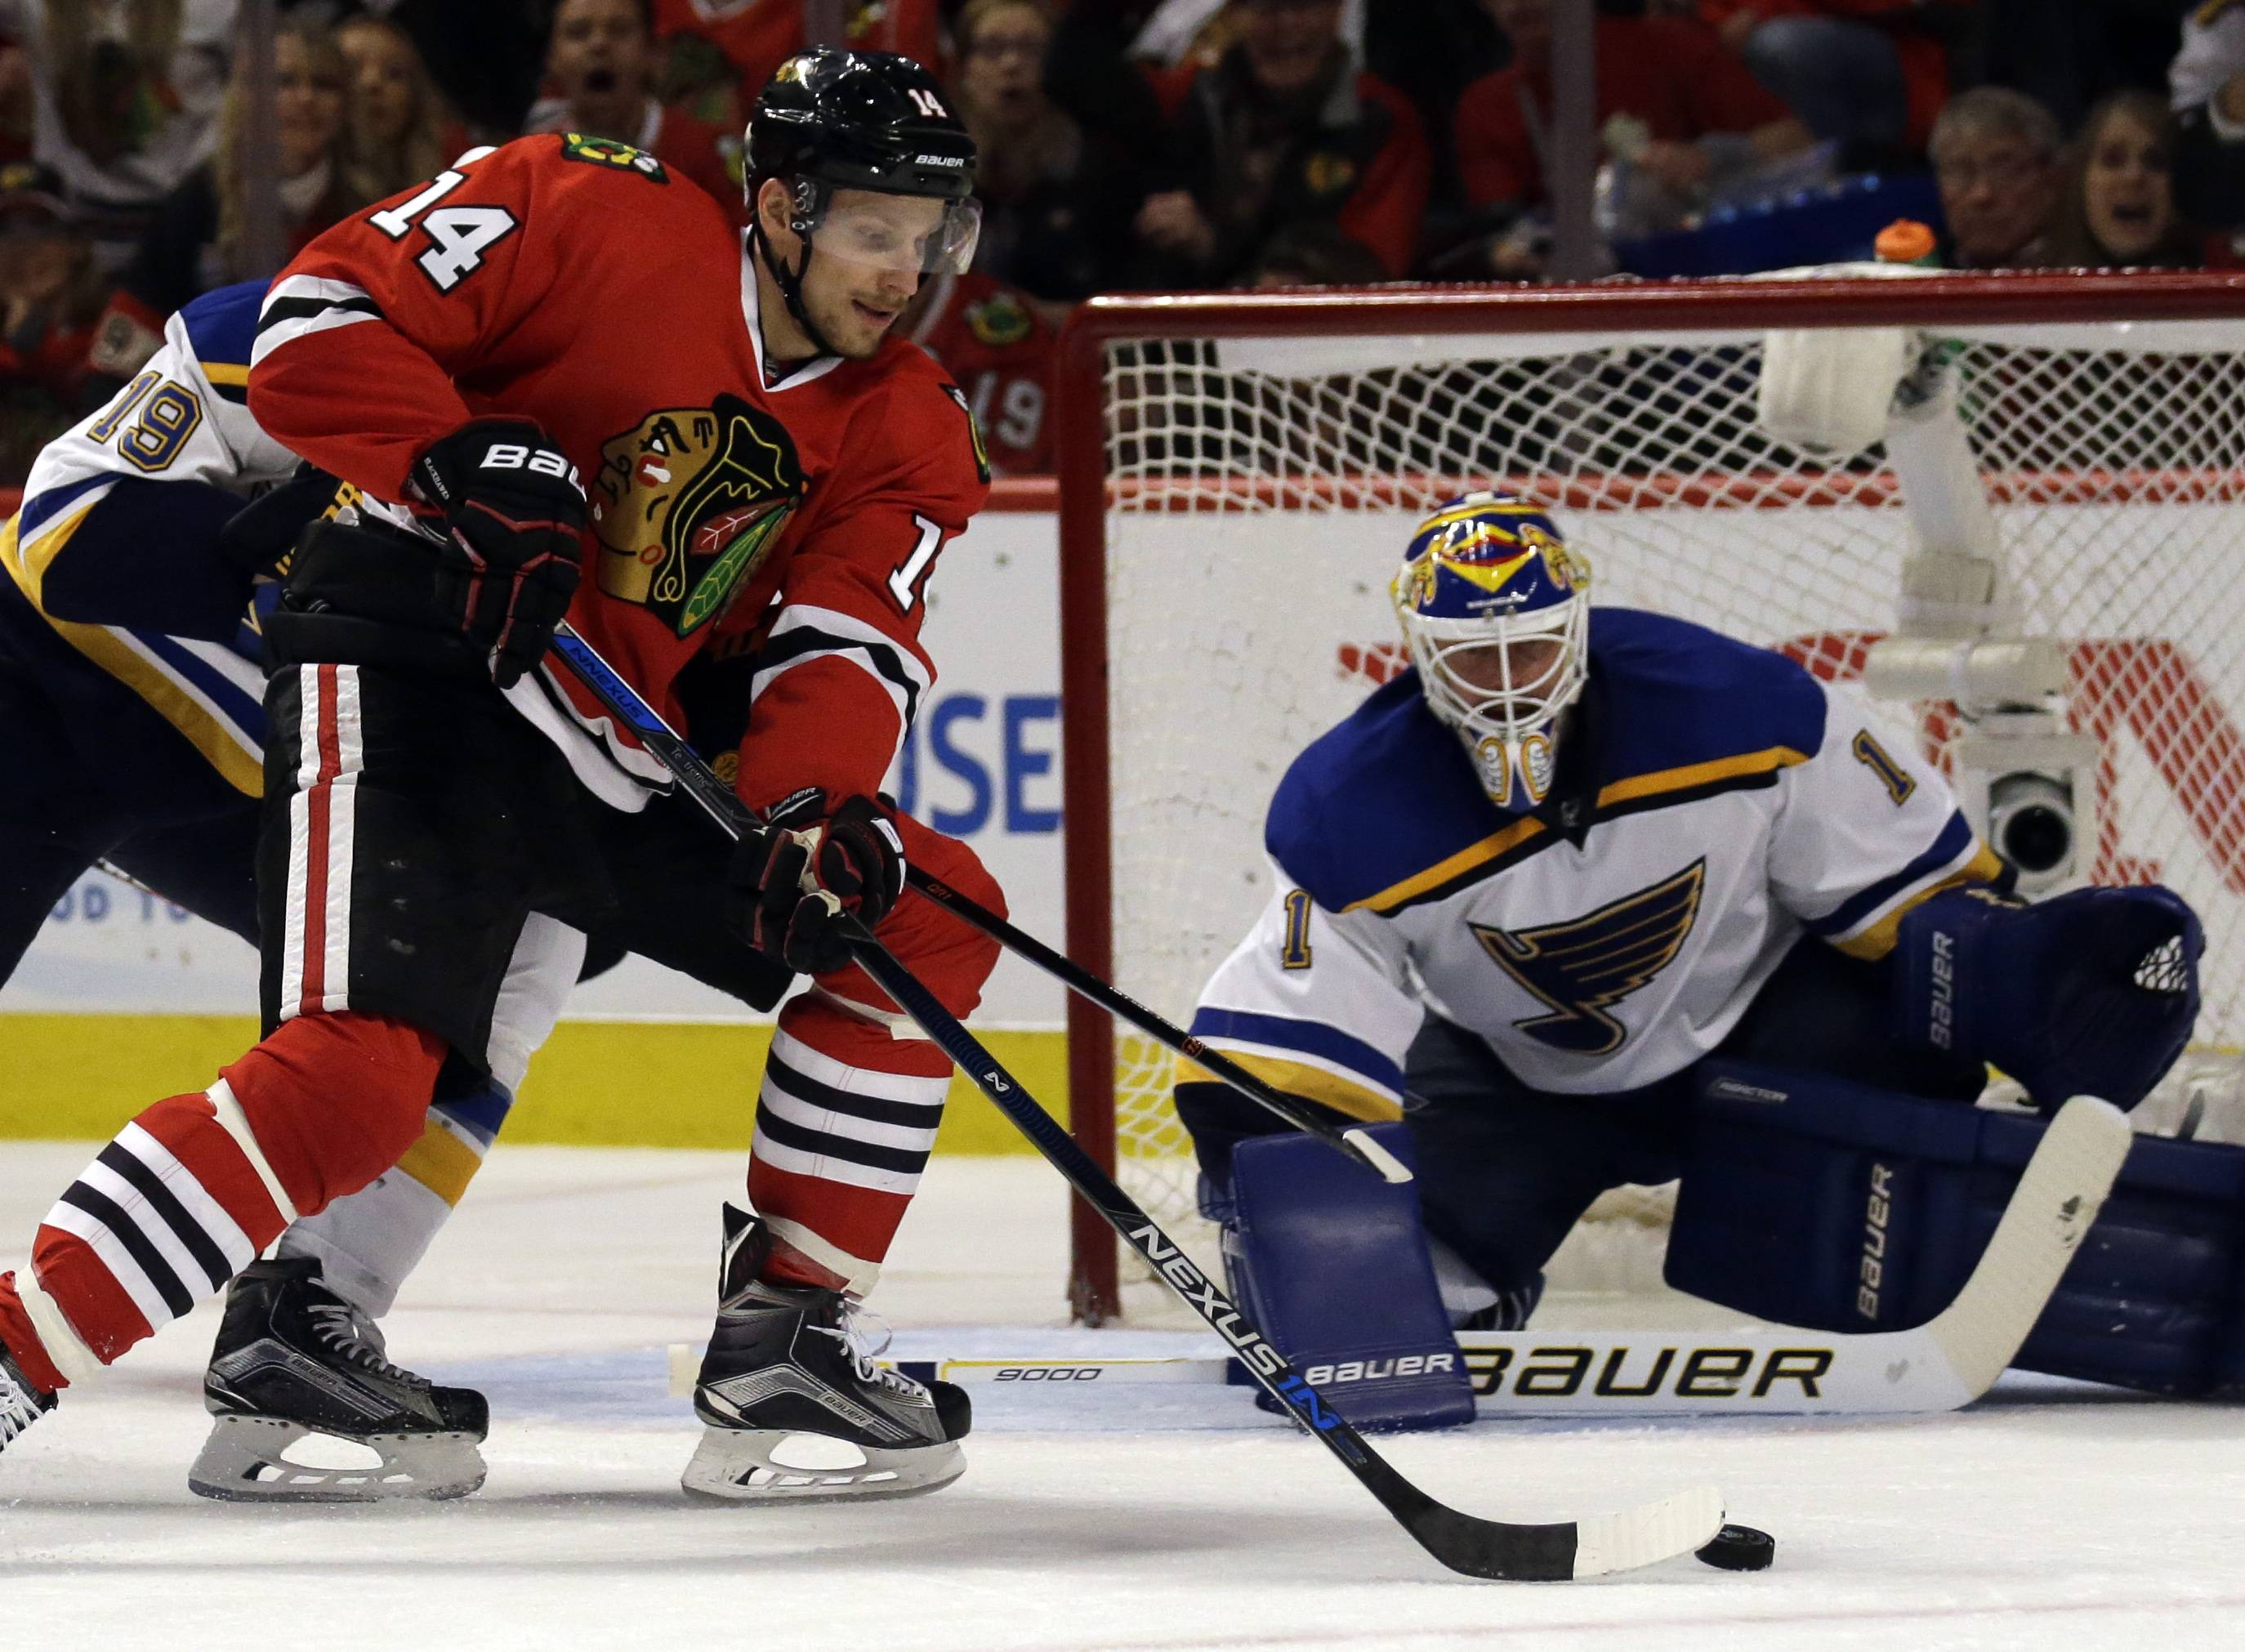 Chicago Blackhawks left wing Richard Panik has been making waves after getting off to a rough start in Chicago last season. At Saturday's training camp scrimmage, Panik continue his positive trend.